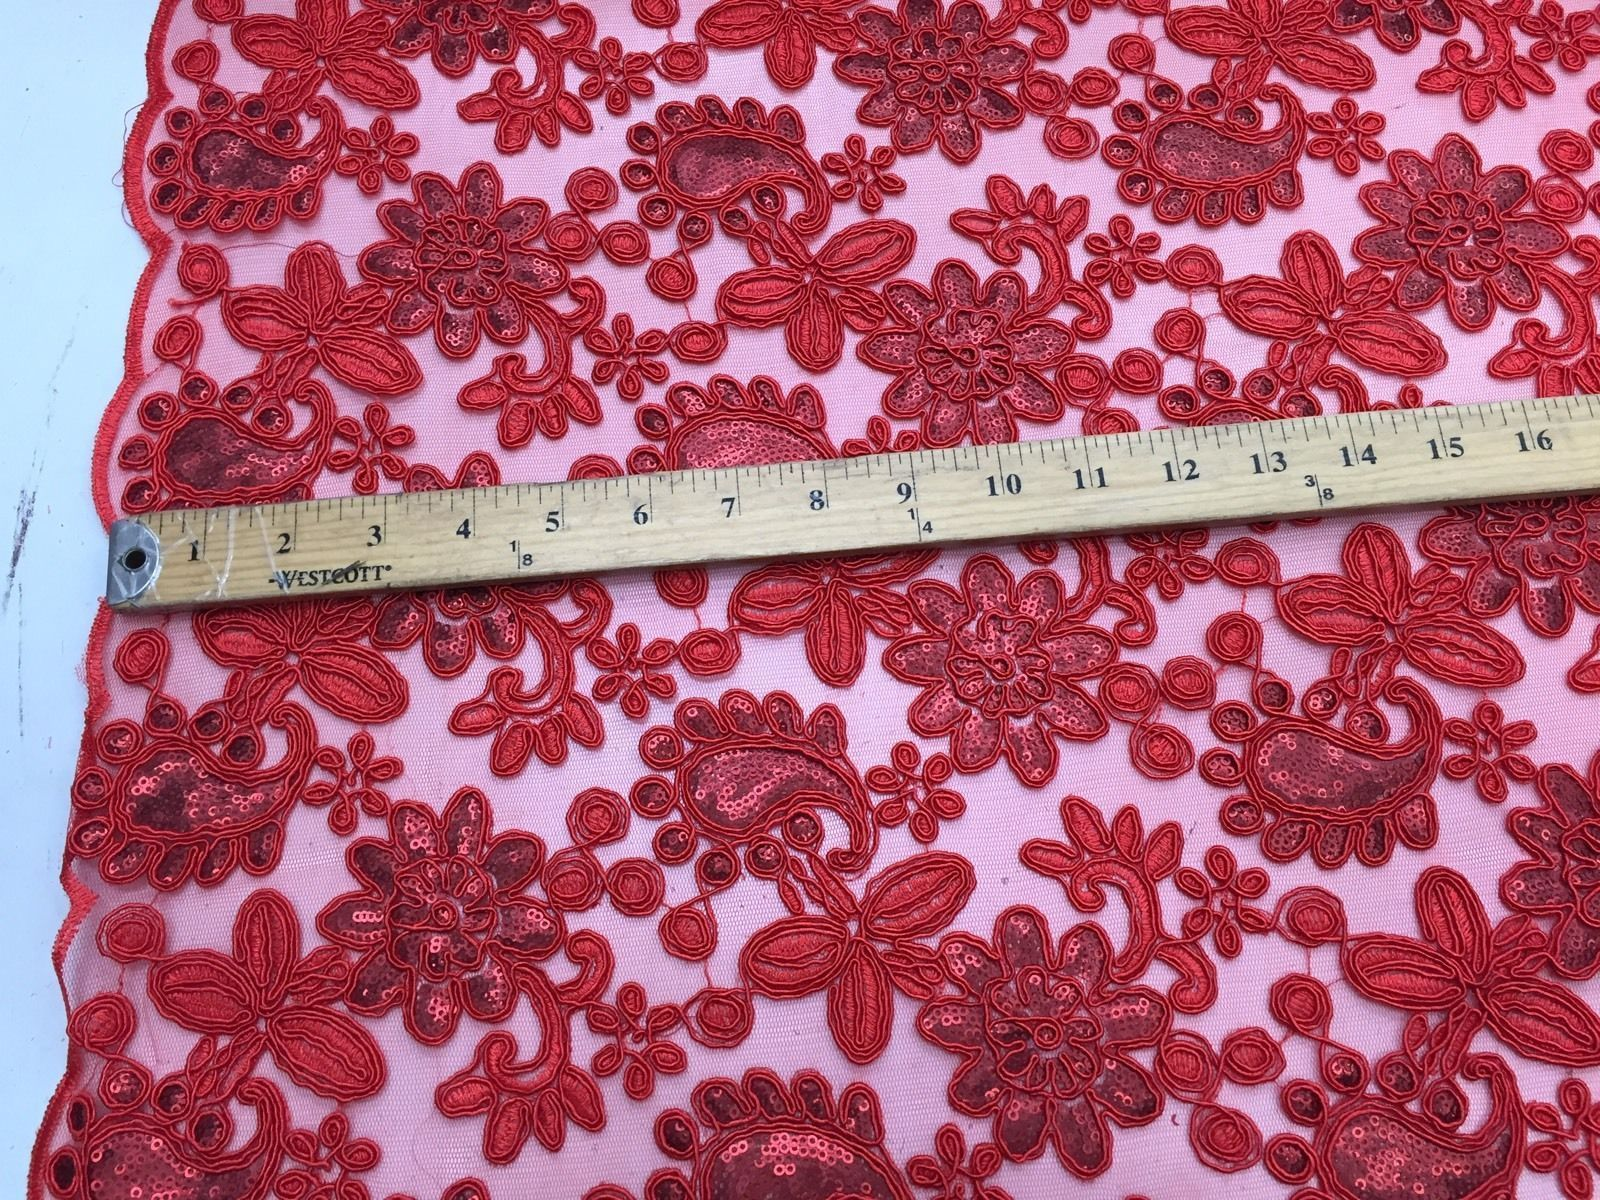 Red Paisley Flowers Embroider On A Mesh Lace.Wedding/Bridal/Nightgowns/Prom. - KINGDOM OF FABRICS